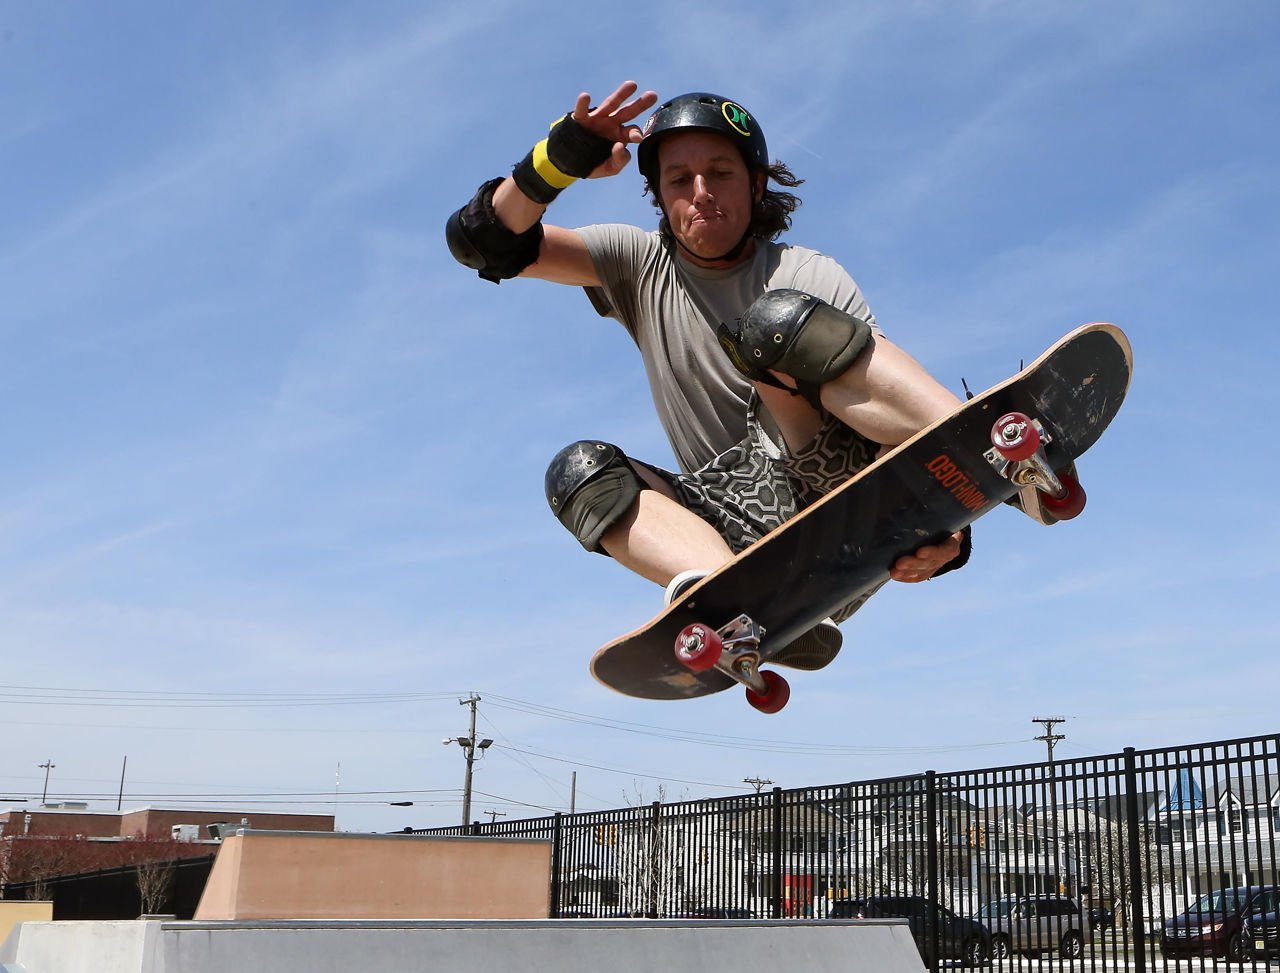 Middle Age Skateboarders For South Jersey skateboarders